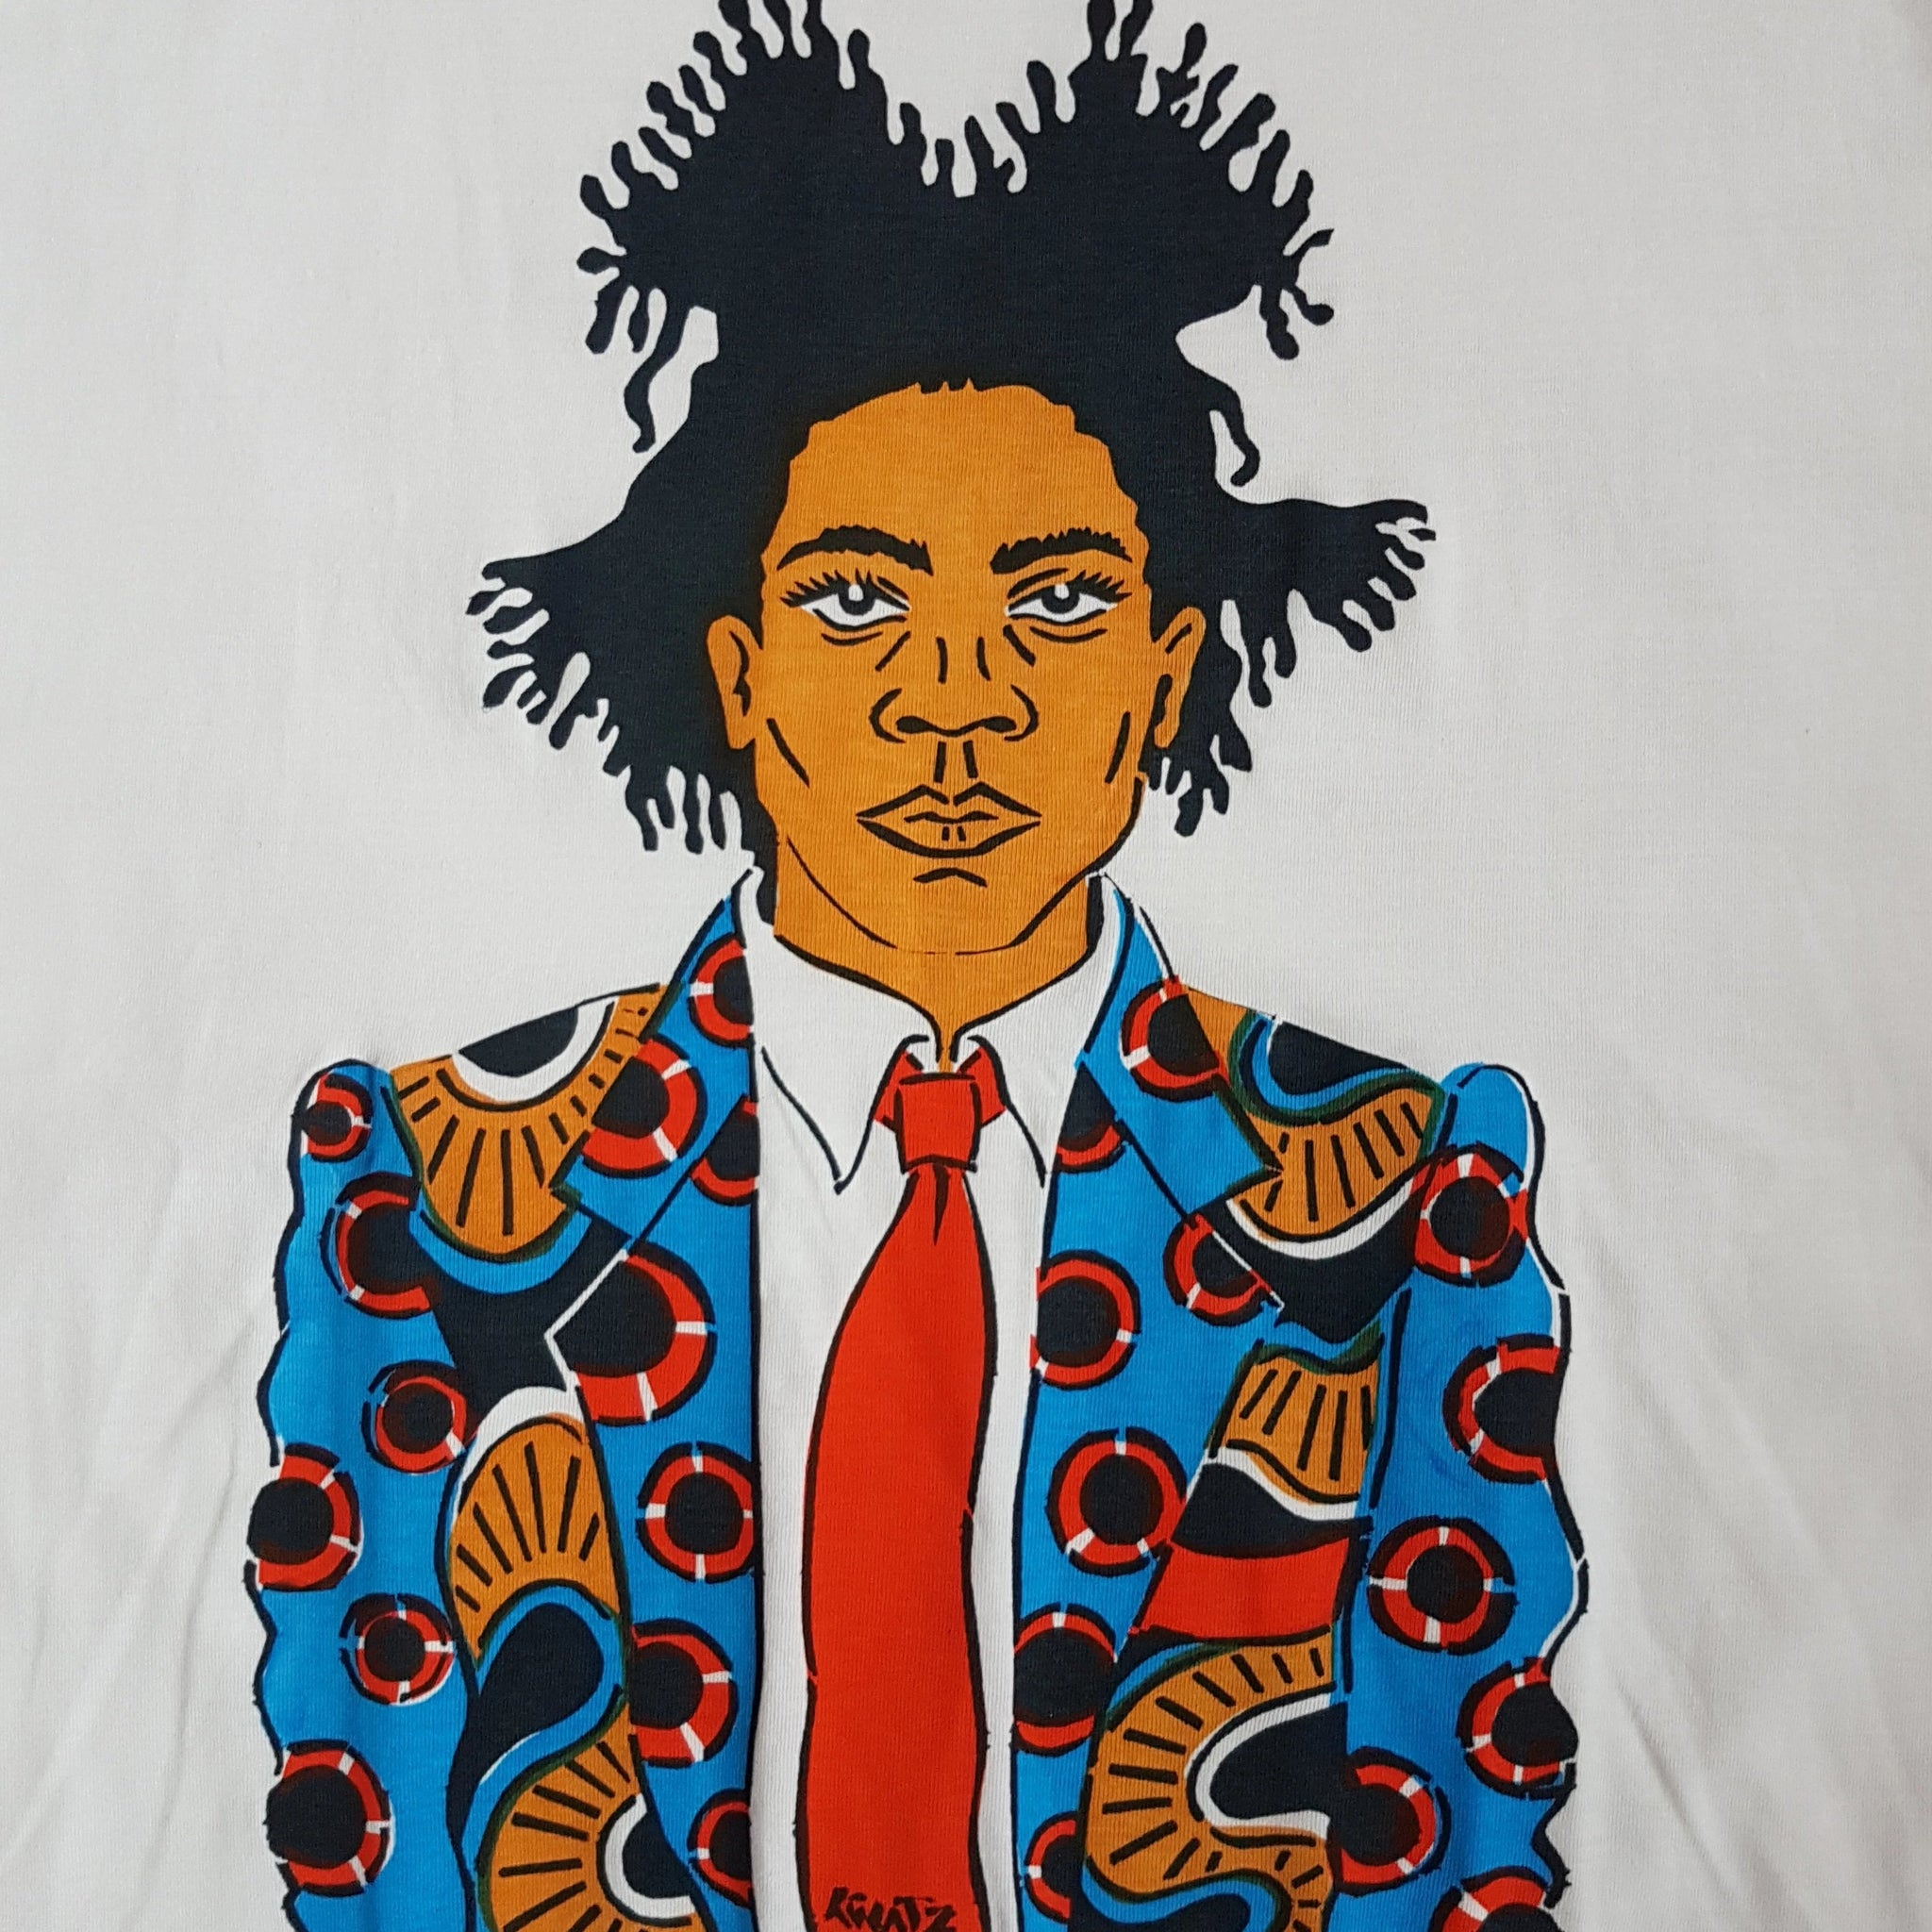 Jean Michel Basquait T-Shirt